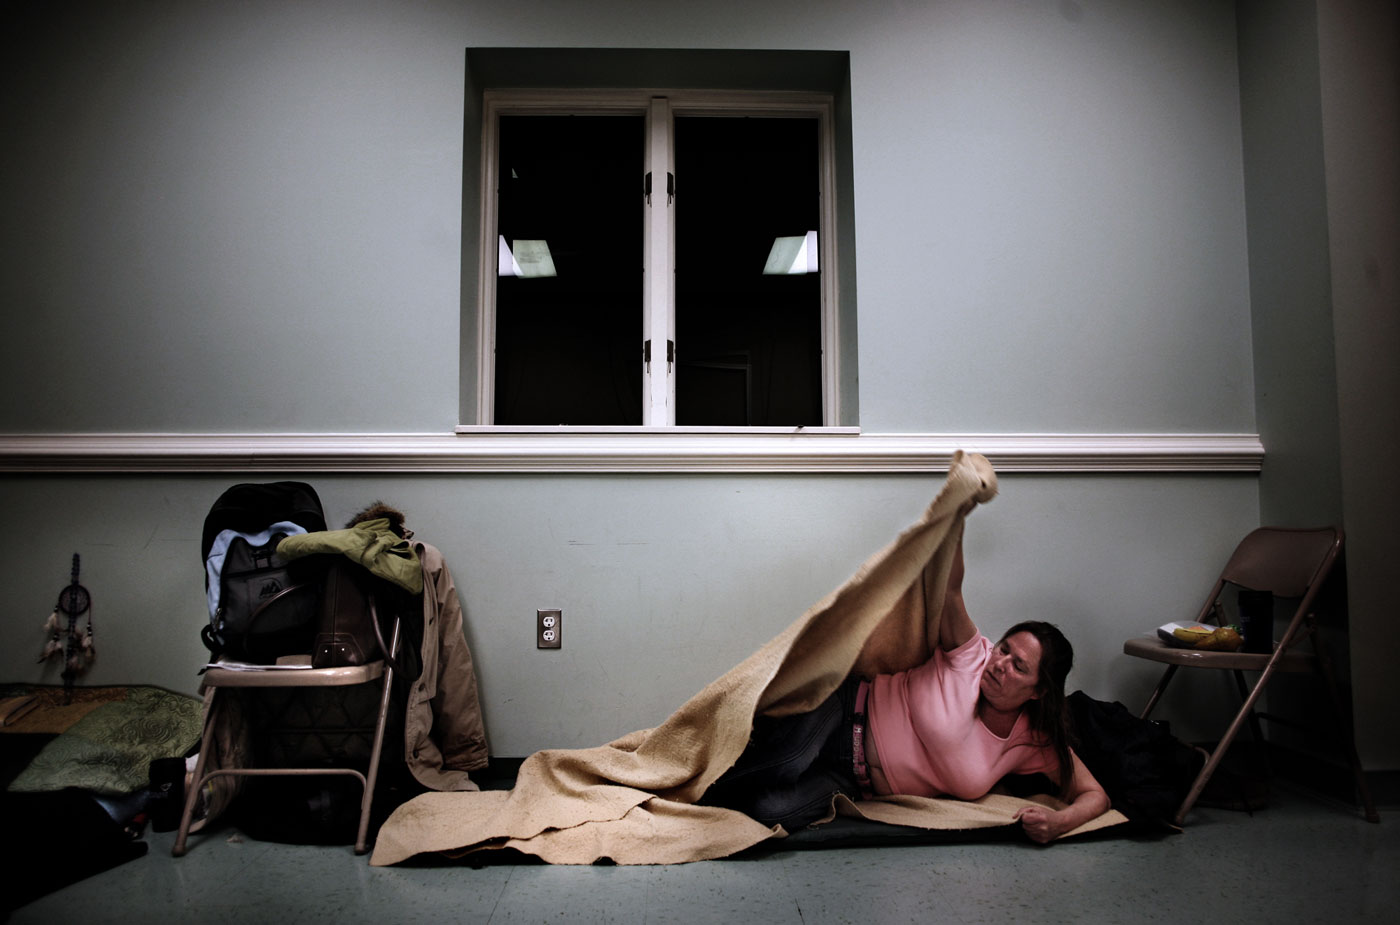 """Julie Burks slips off her shoes and exhales softly.She pulls her coat over her purse – her pillow for the night - then lays down and stares into the distance.""""It feels good that I'm not out in the cold,"""" says Burks, who is homeless. """"When I was out there, the first thing I would do is drink. I would shiver all night - I didn't sleep. At least drinking keeps me warm.""""Burks is trying to kick the habit and has been clean for the past few days.On this night, she and other homeless people are sleeping at Lynnhaven United Methodist Church in Virginia Beach. Burks is one of dozens assisted by Volunteers of America, which works in partnership with area faith communities to provide shelter throughout the winter.""""I can handle it out there, but it's very difficult, especially when you're trying to stay sober and get your life back in order.{quote}"""